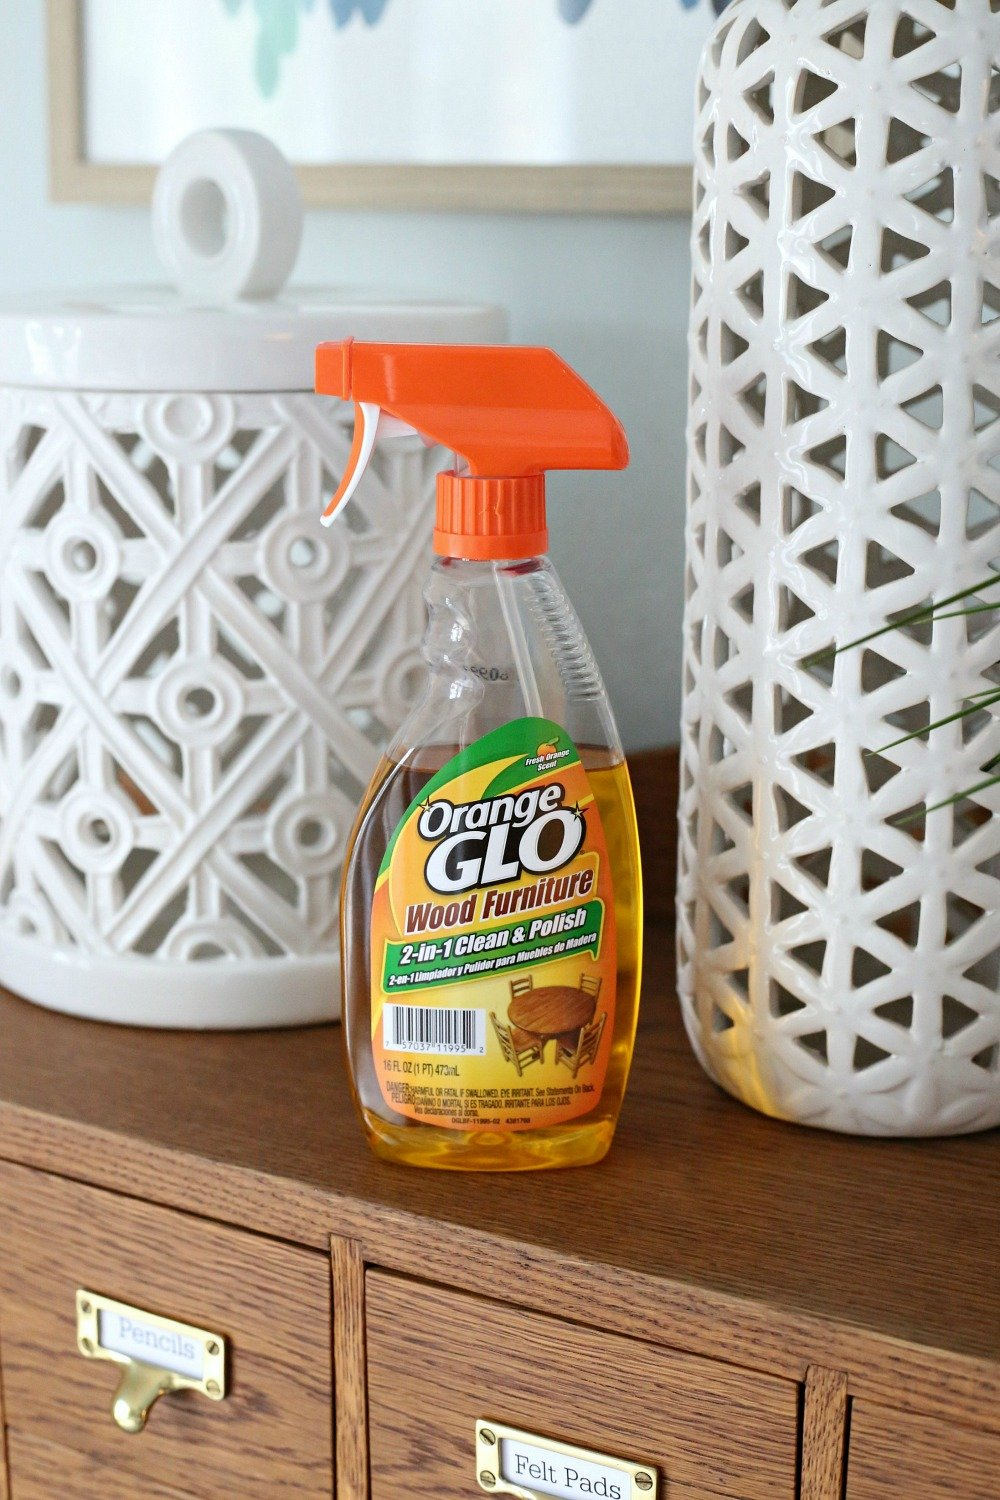 OrangeGlo 2-in-1 Cleaner and Polish